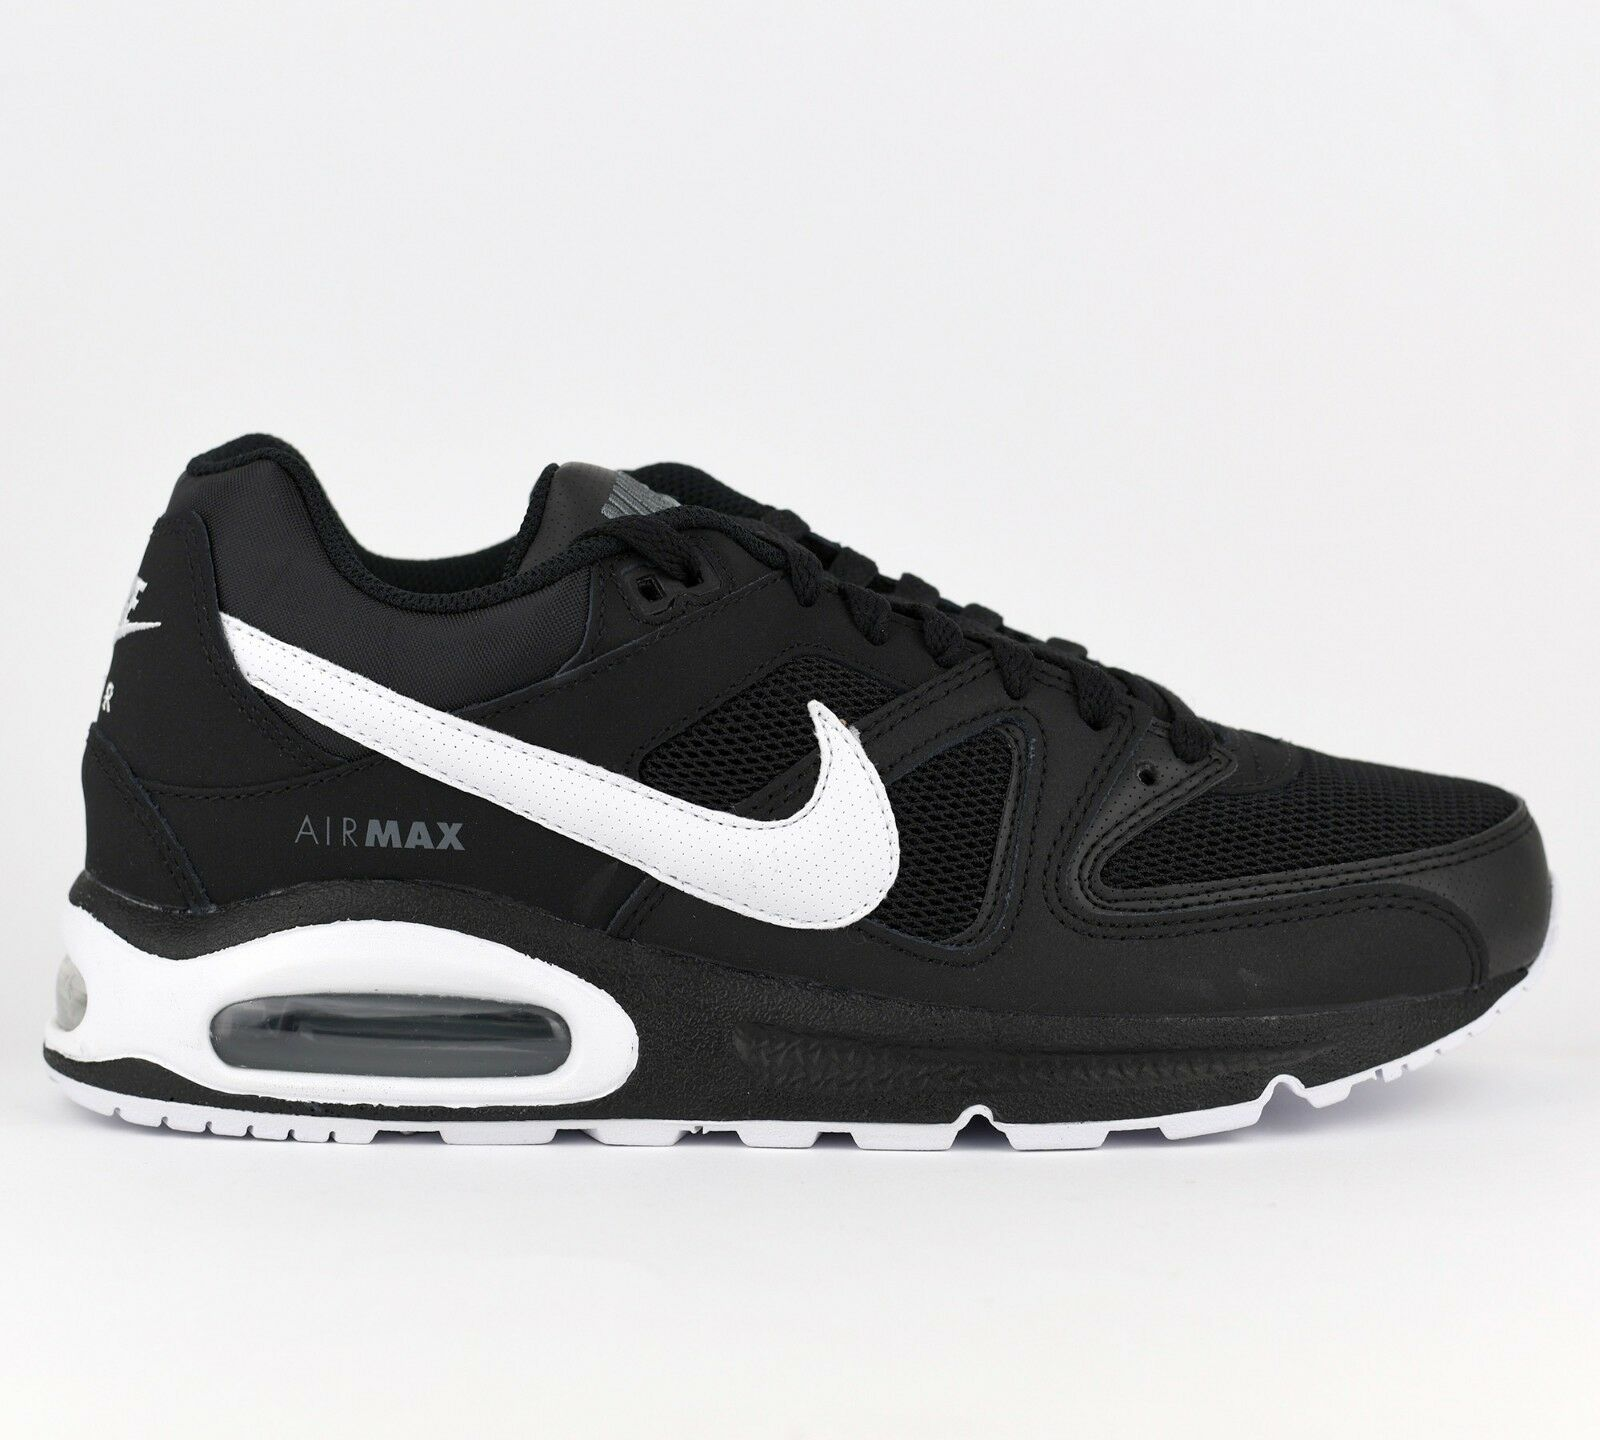 Nike Air Max Command Men Lifestyle Sneakers shoes New Black White 629993-032